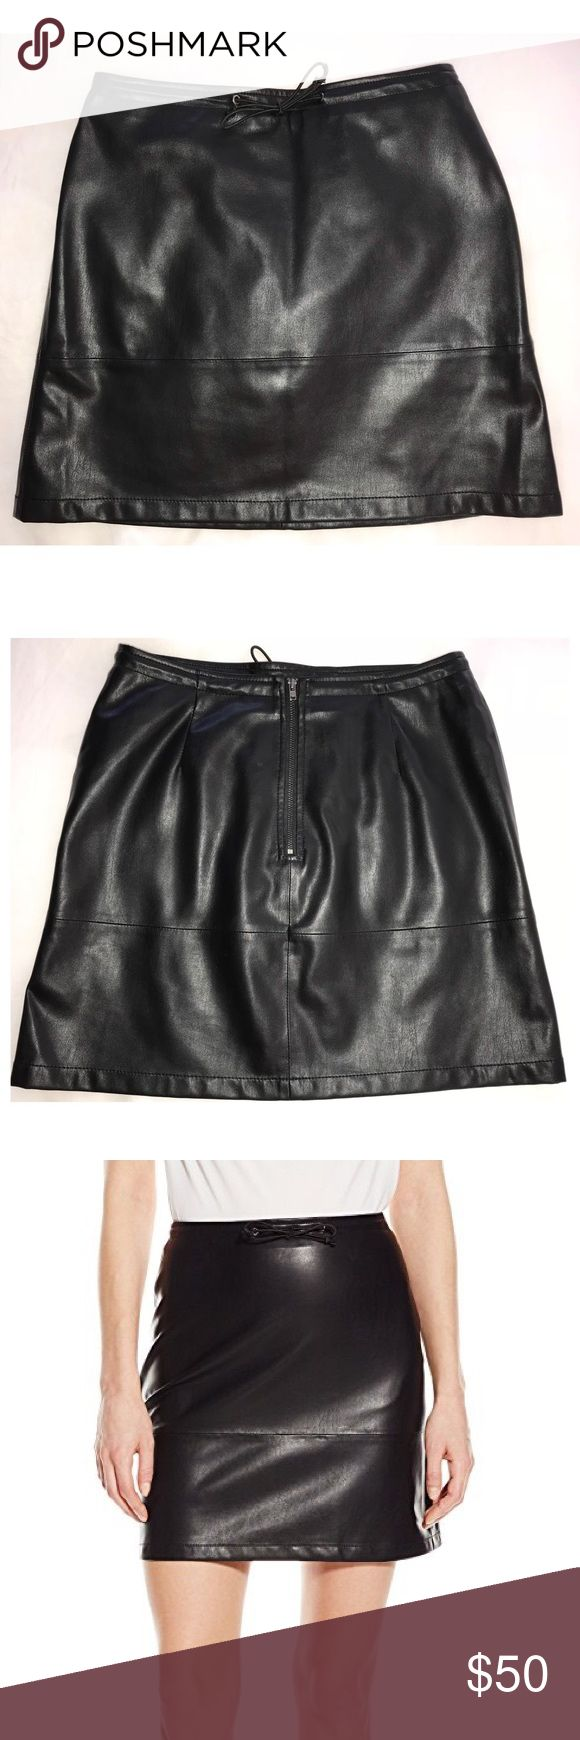 French Connection Leather Skirt French Connection Women's Atlantic Pu Drawstring Skirt. Made from luxurious faux leather skirt has a drawstring pull. French Connection Skirts Mini